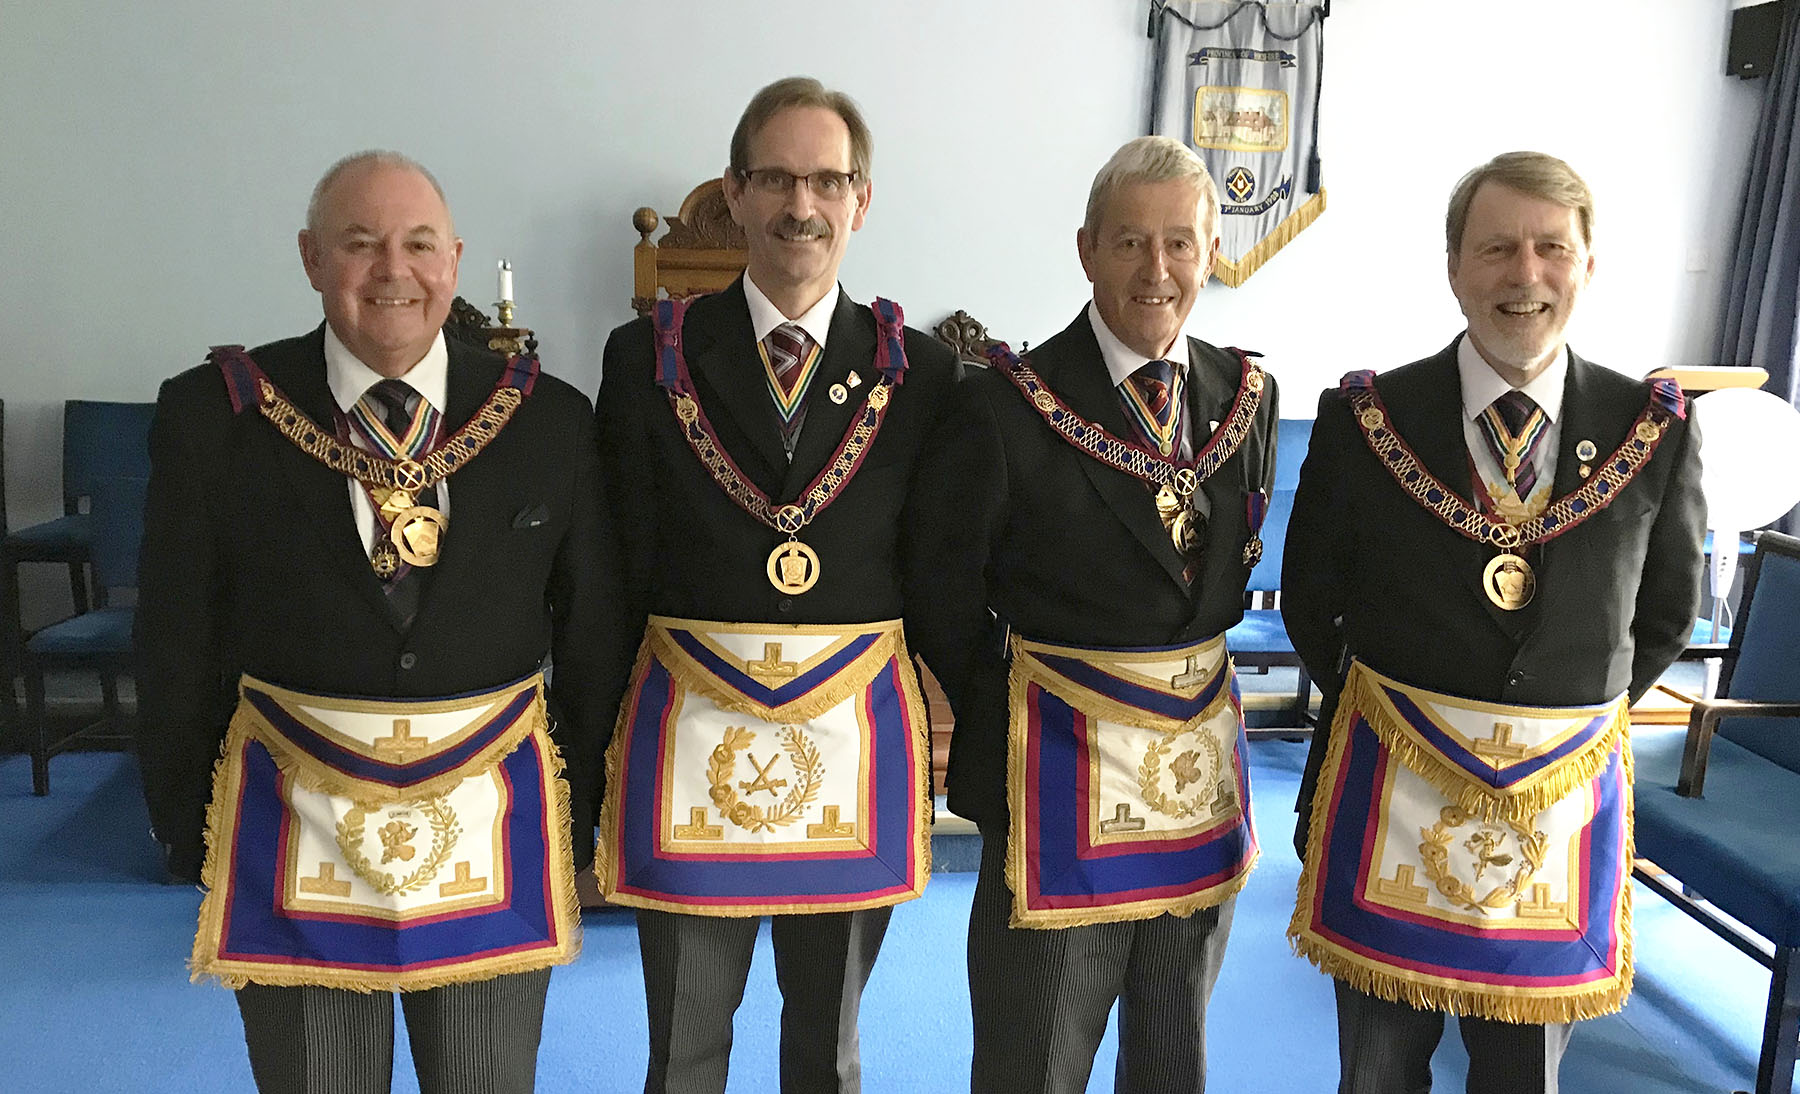 Visit to the Provincial Mark Grand Lodge of Buckinghamshire